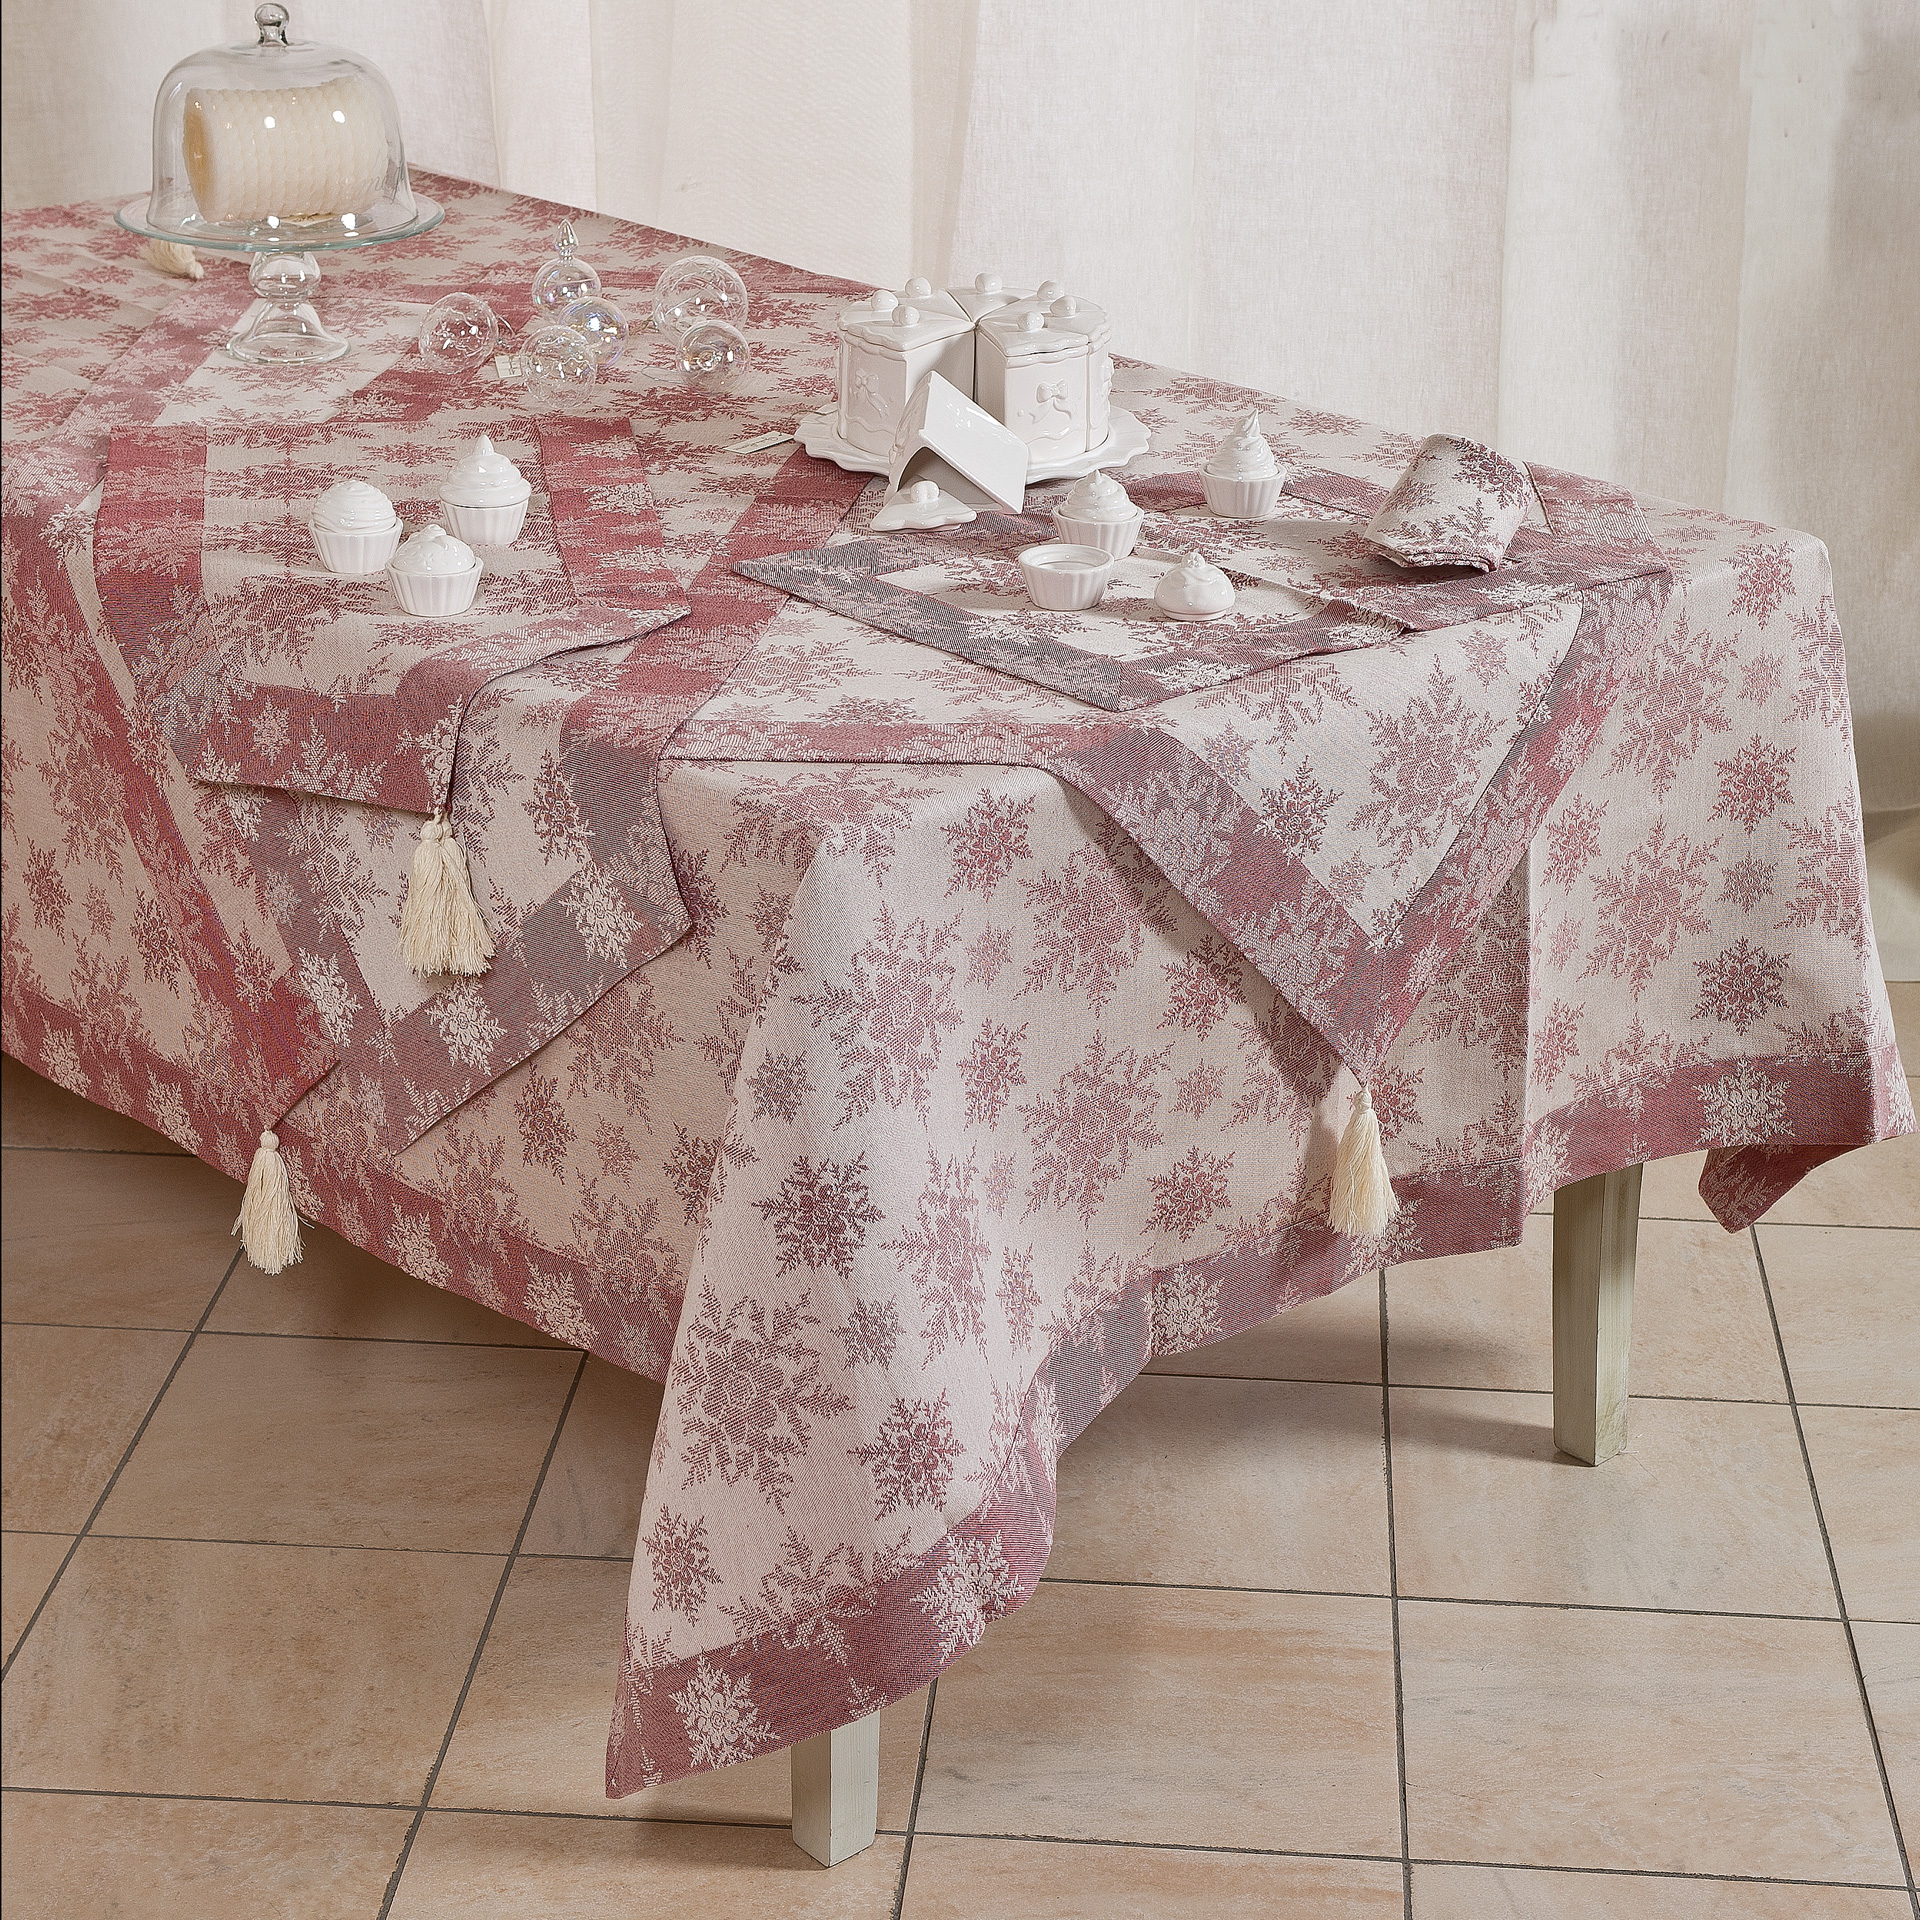 Linen blend tablecloth with snowflakes pattern